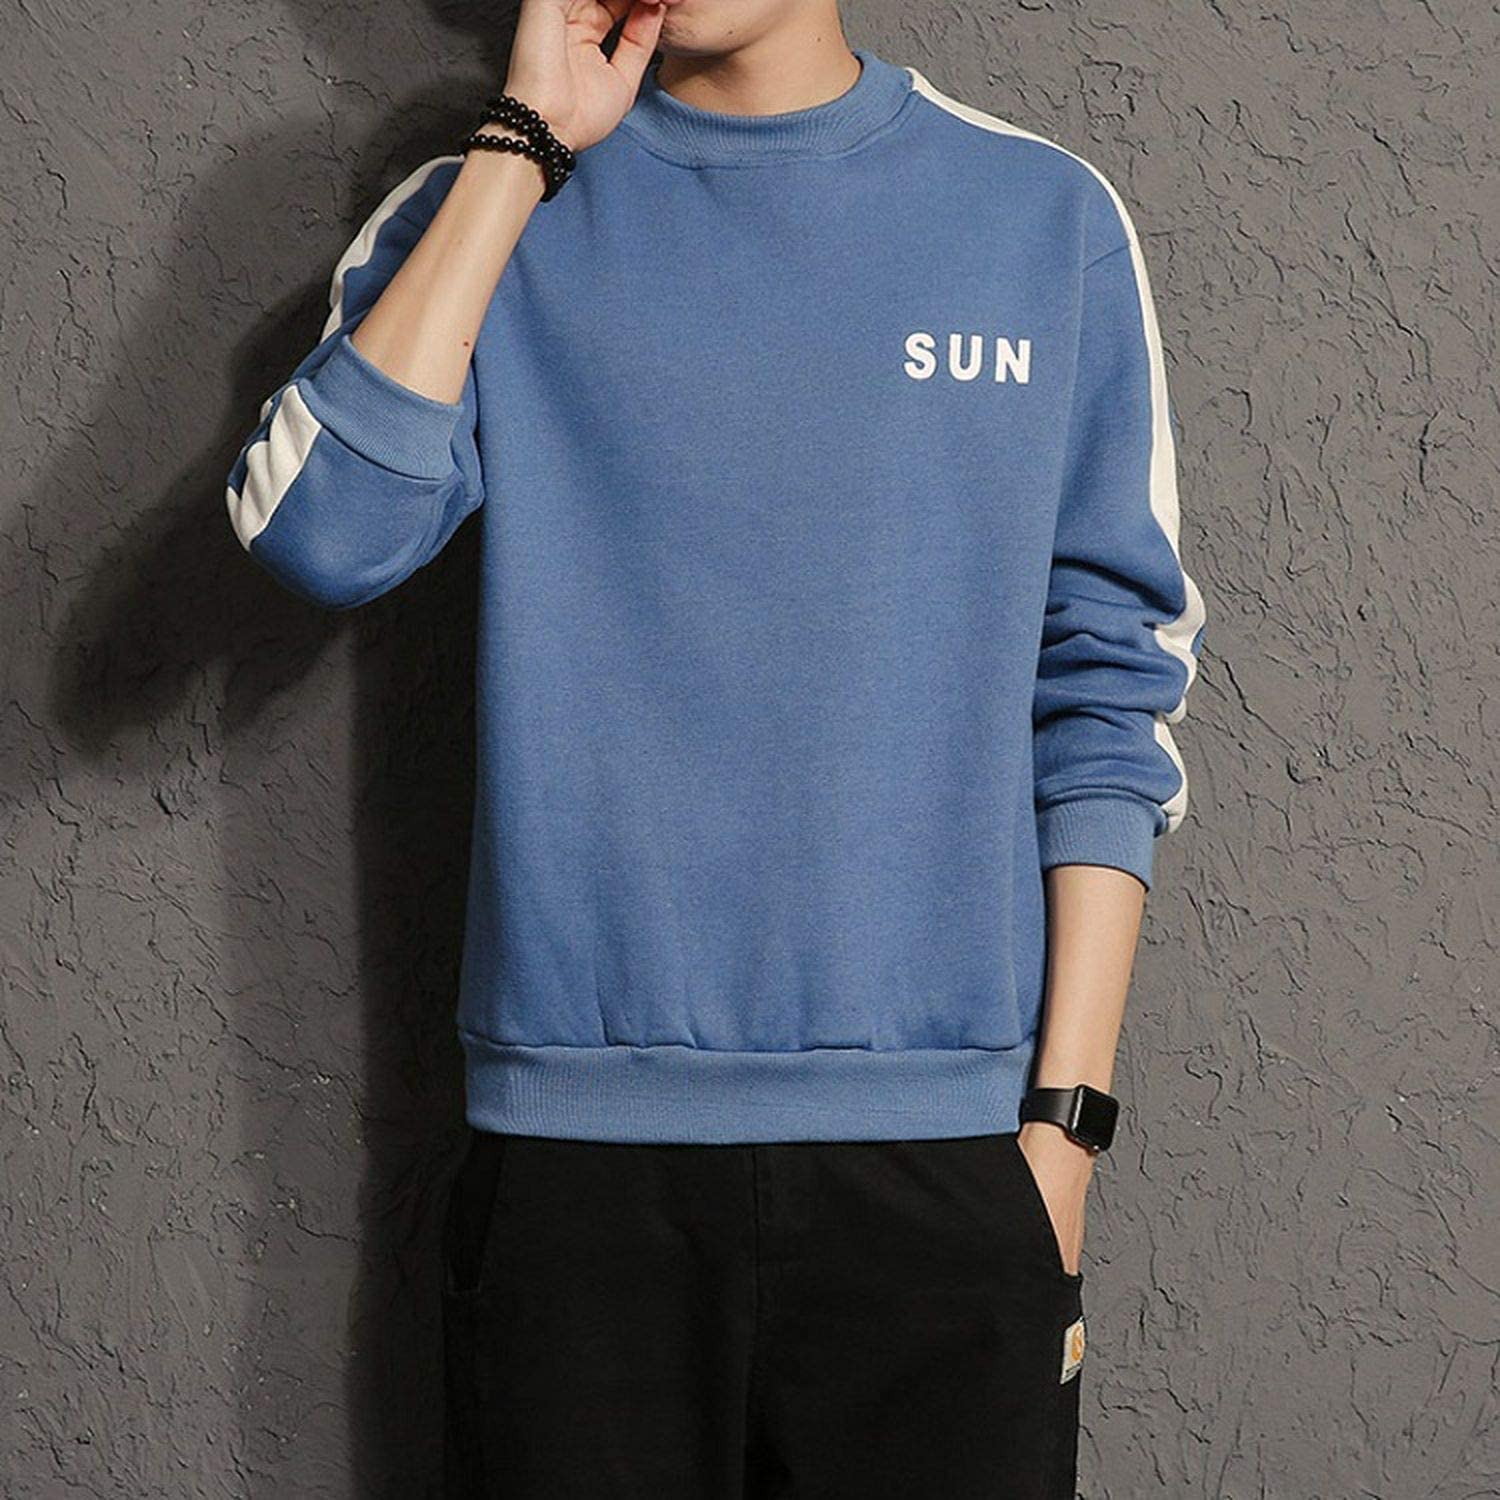 Men Hoodies Spring O-Neck Long Sleeve Sweatshirt for Men Casual Streetwear Hoodies,Blue,L